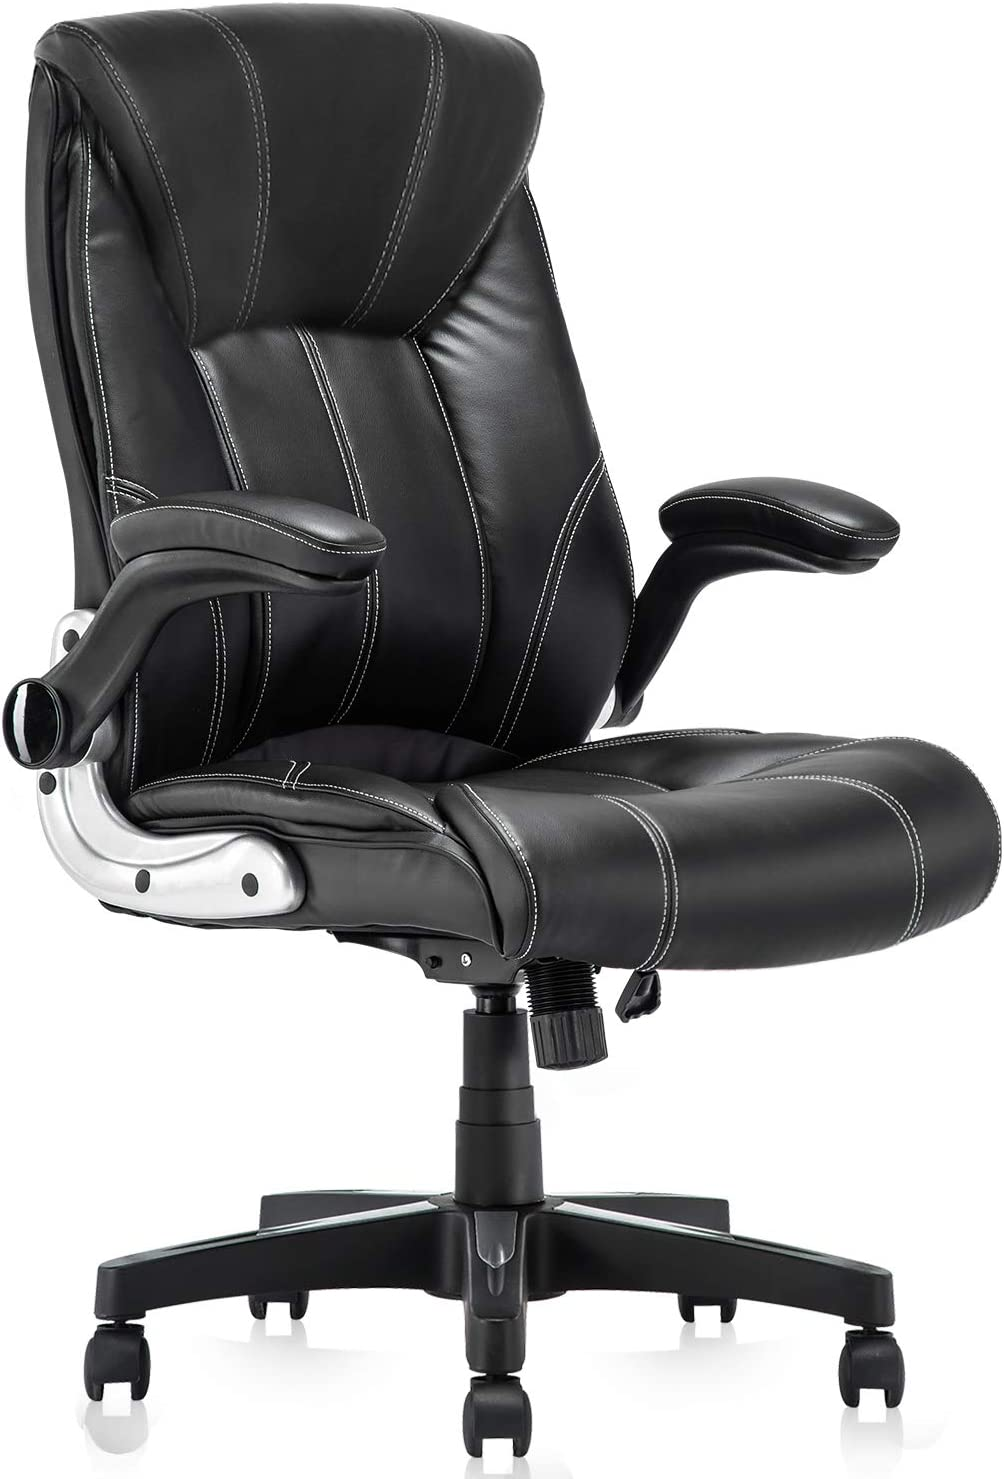 Amazon Com Yamasoro Leather Executive Office Chair Flip Up Arm Rests Ergonomic Chair Comfortable Massage Computer Desk Chairs Black Task Chair With Wheels For Home Office Office Products